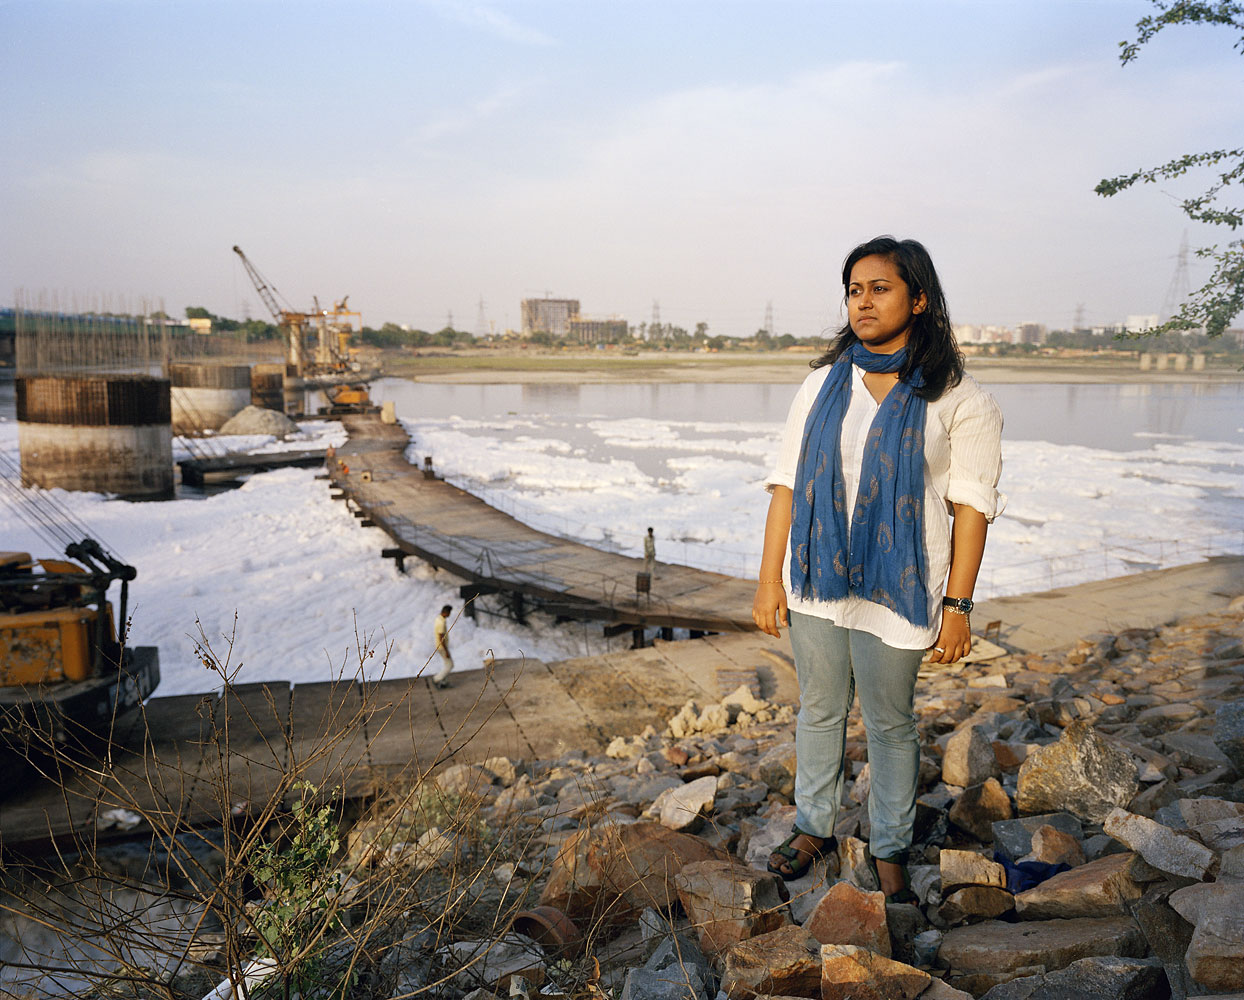 Bhaswati, 21, Sociology student                               Bhaswati is passionate about the environment and volunteers with an organization called 'Swechha' that began as campaign to raise awareness about pollution in the River Yamuna. Bhaswati feels there is a distinct lack of commitment from the government when it comes to environmental issues.